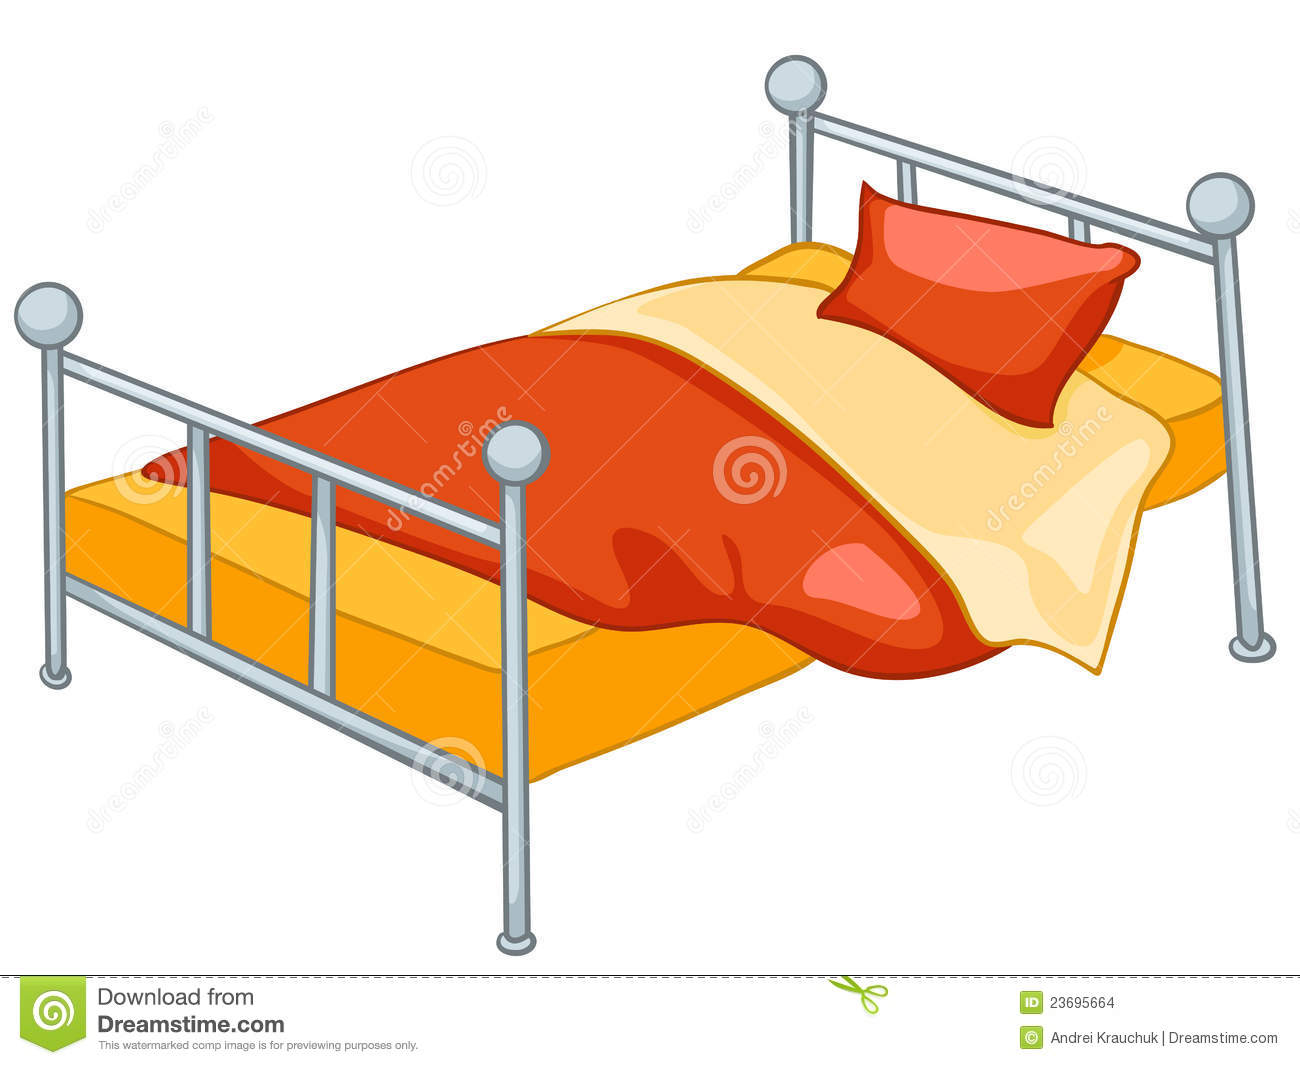 Cartoon Home Furniture Bed. Cartoon Home Furniture Bed Stock Images   Image  23695664